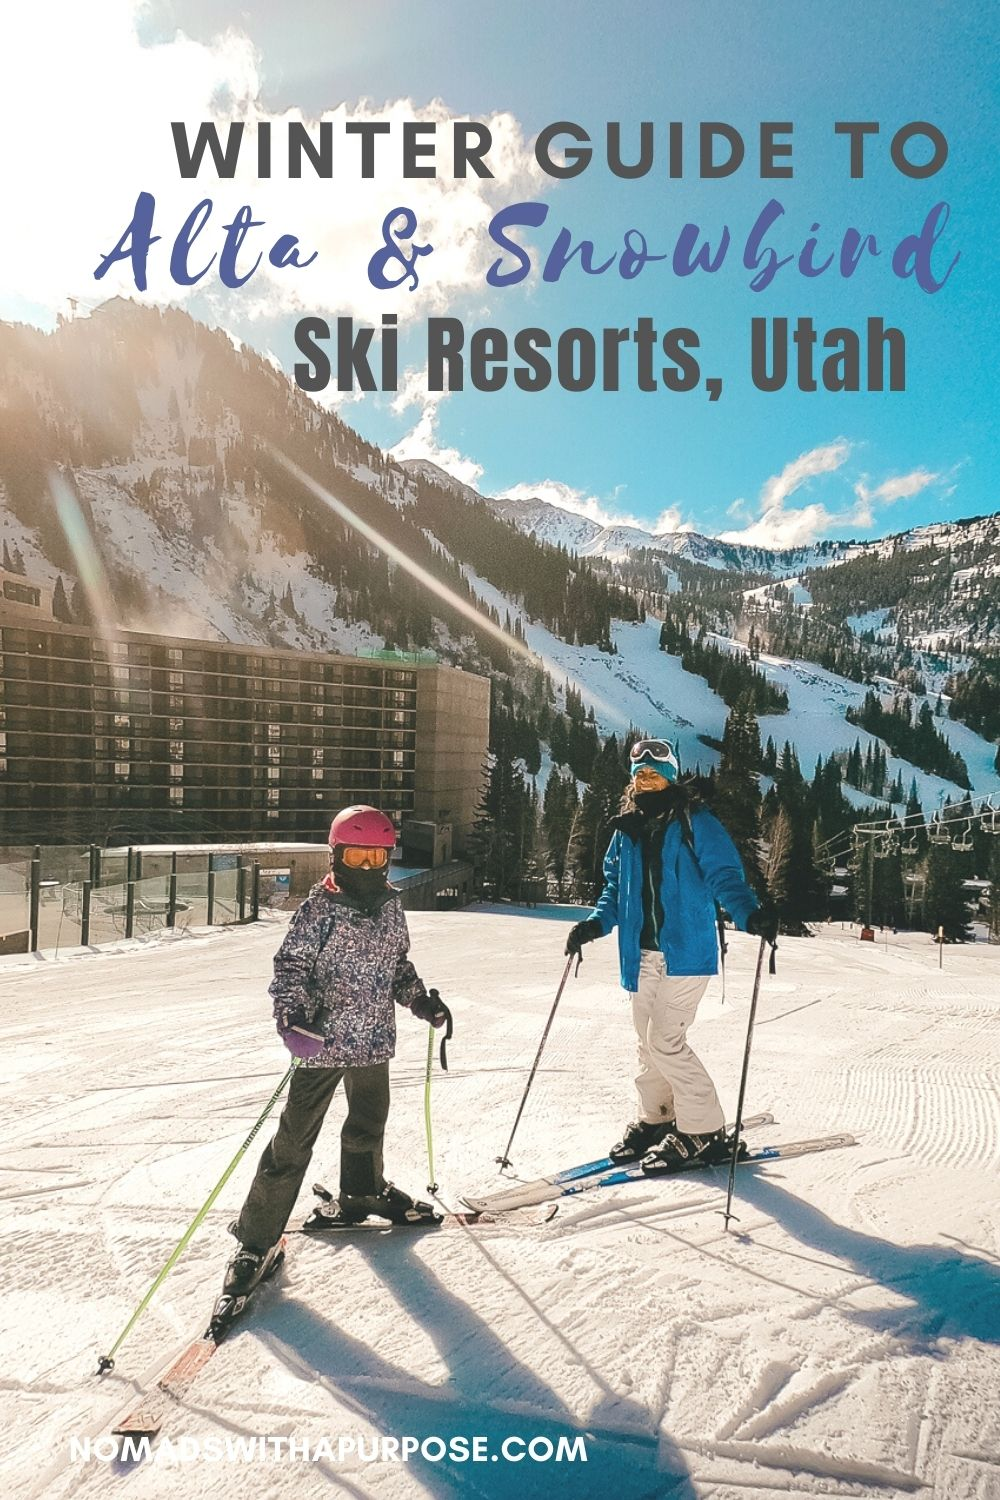 Winter Guide to Alta & Snowbird Resorts, Utah